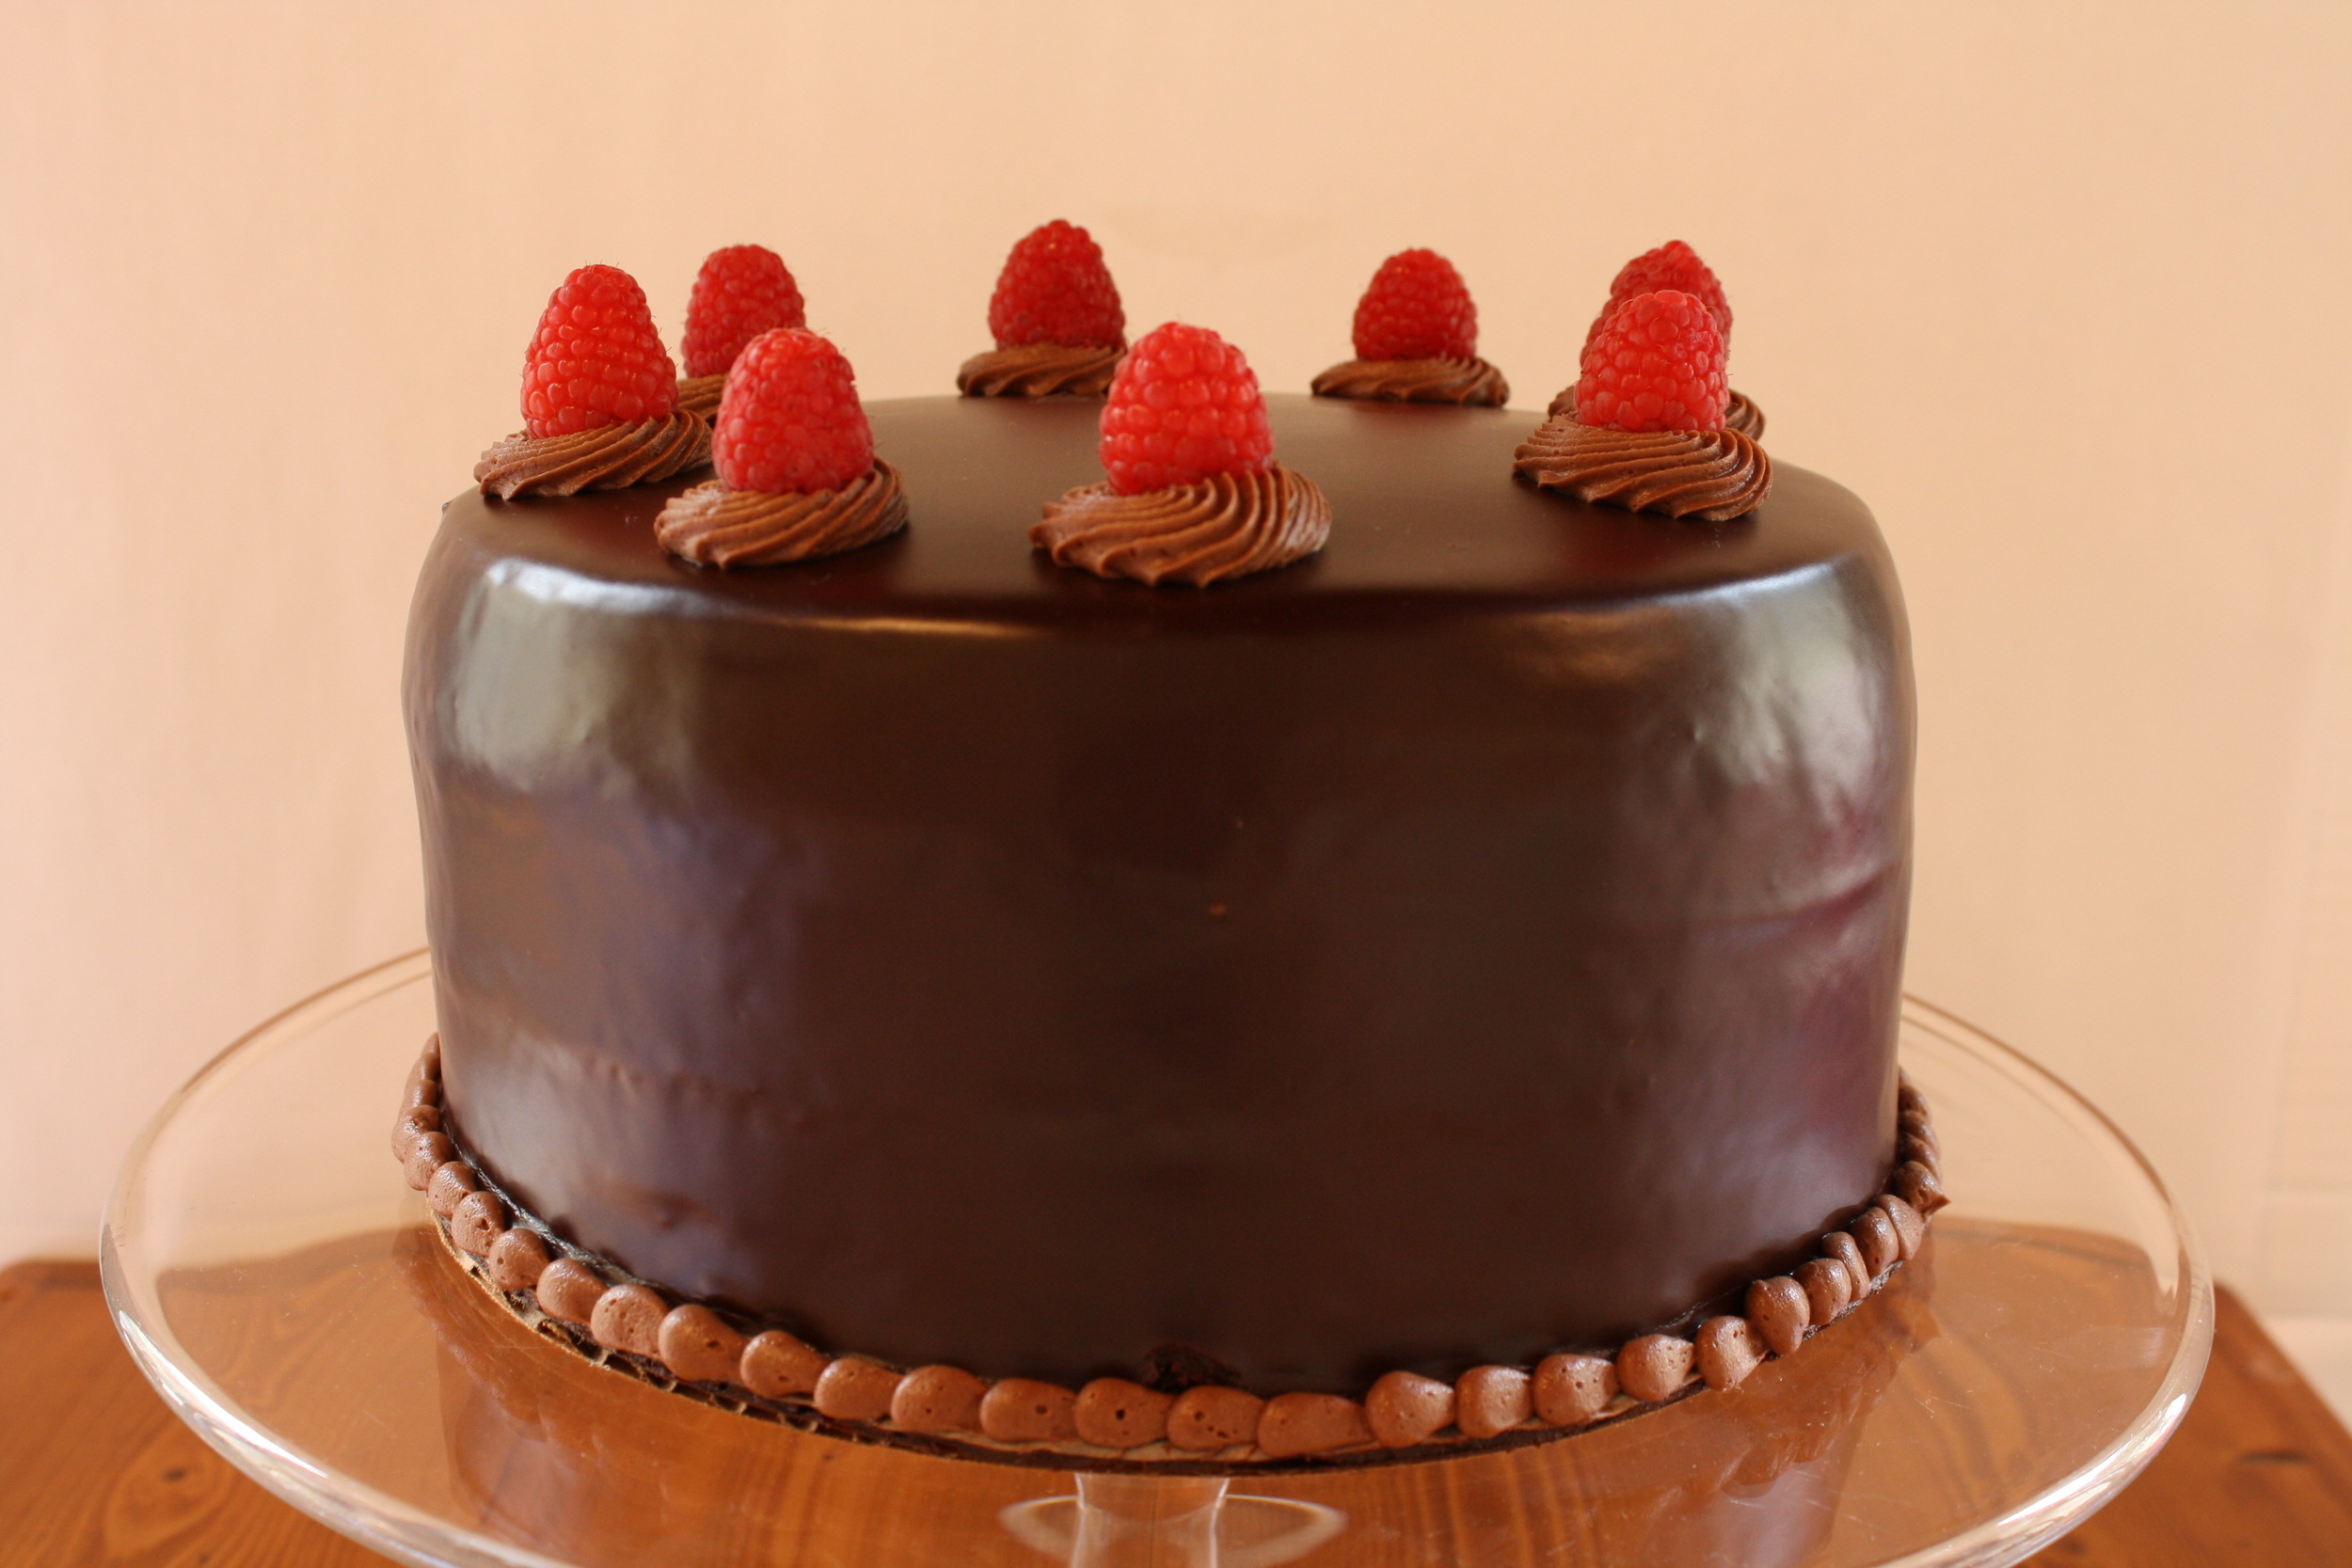 raspberry chocolate ganache*  moist chocolate cake layered with raspberry filling, and covered with CHOCOLATE ganache and fresh raspberries